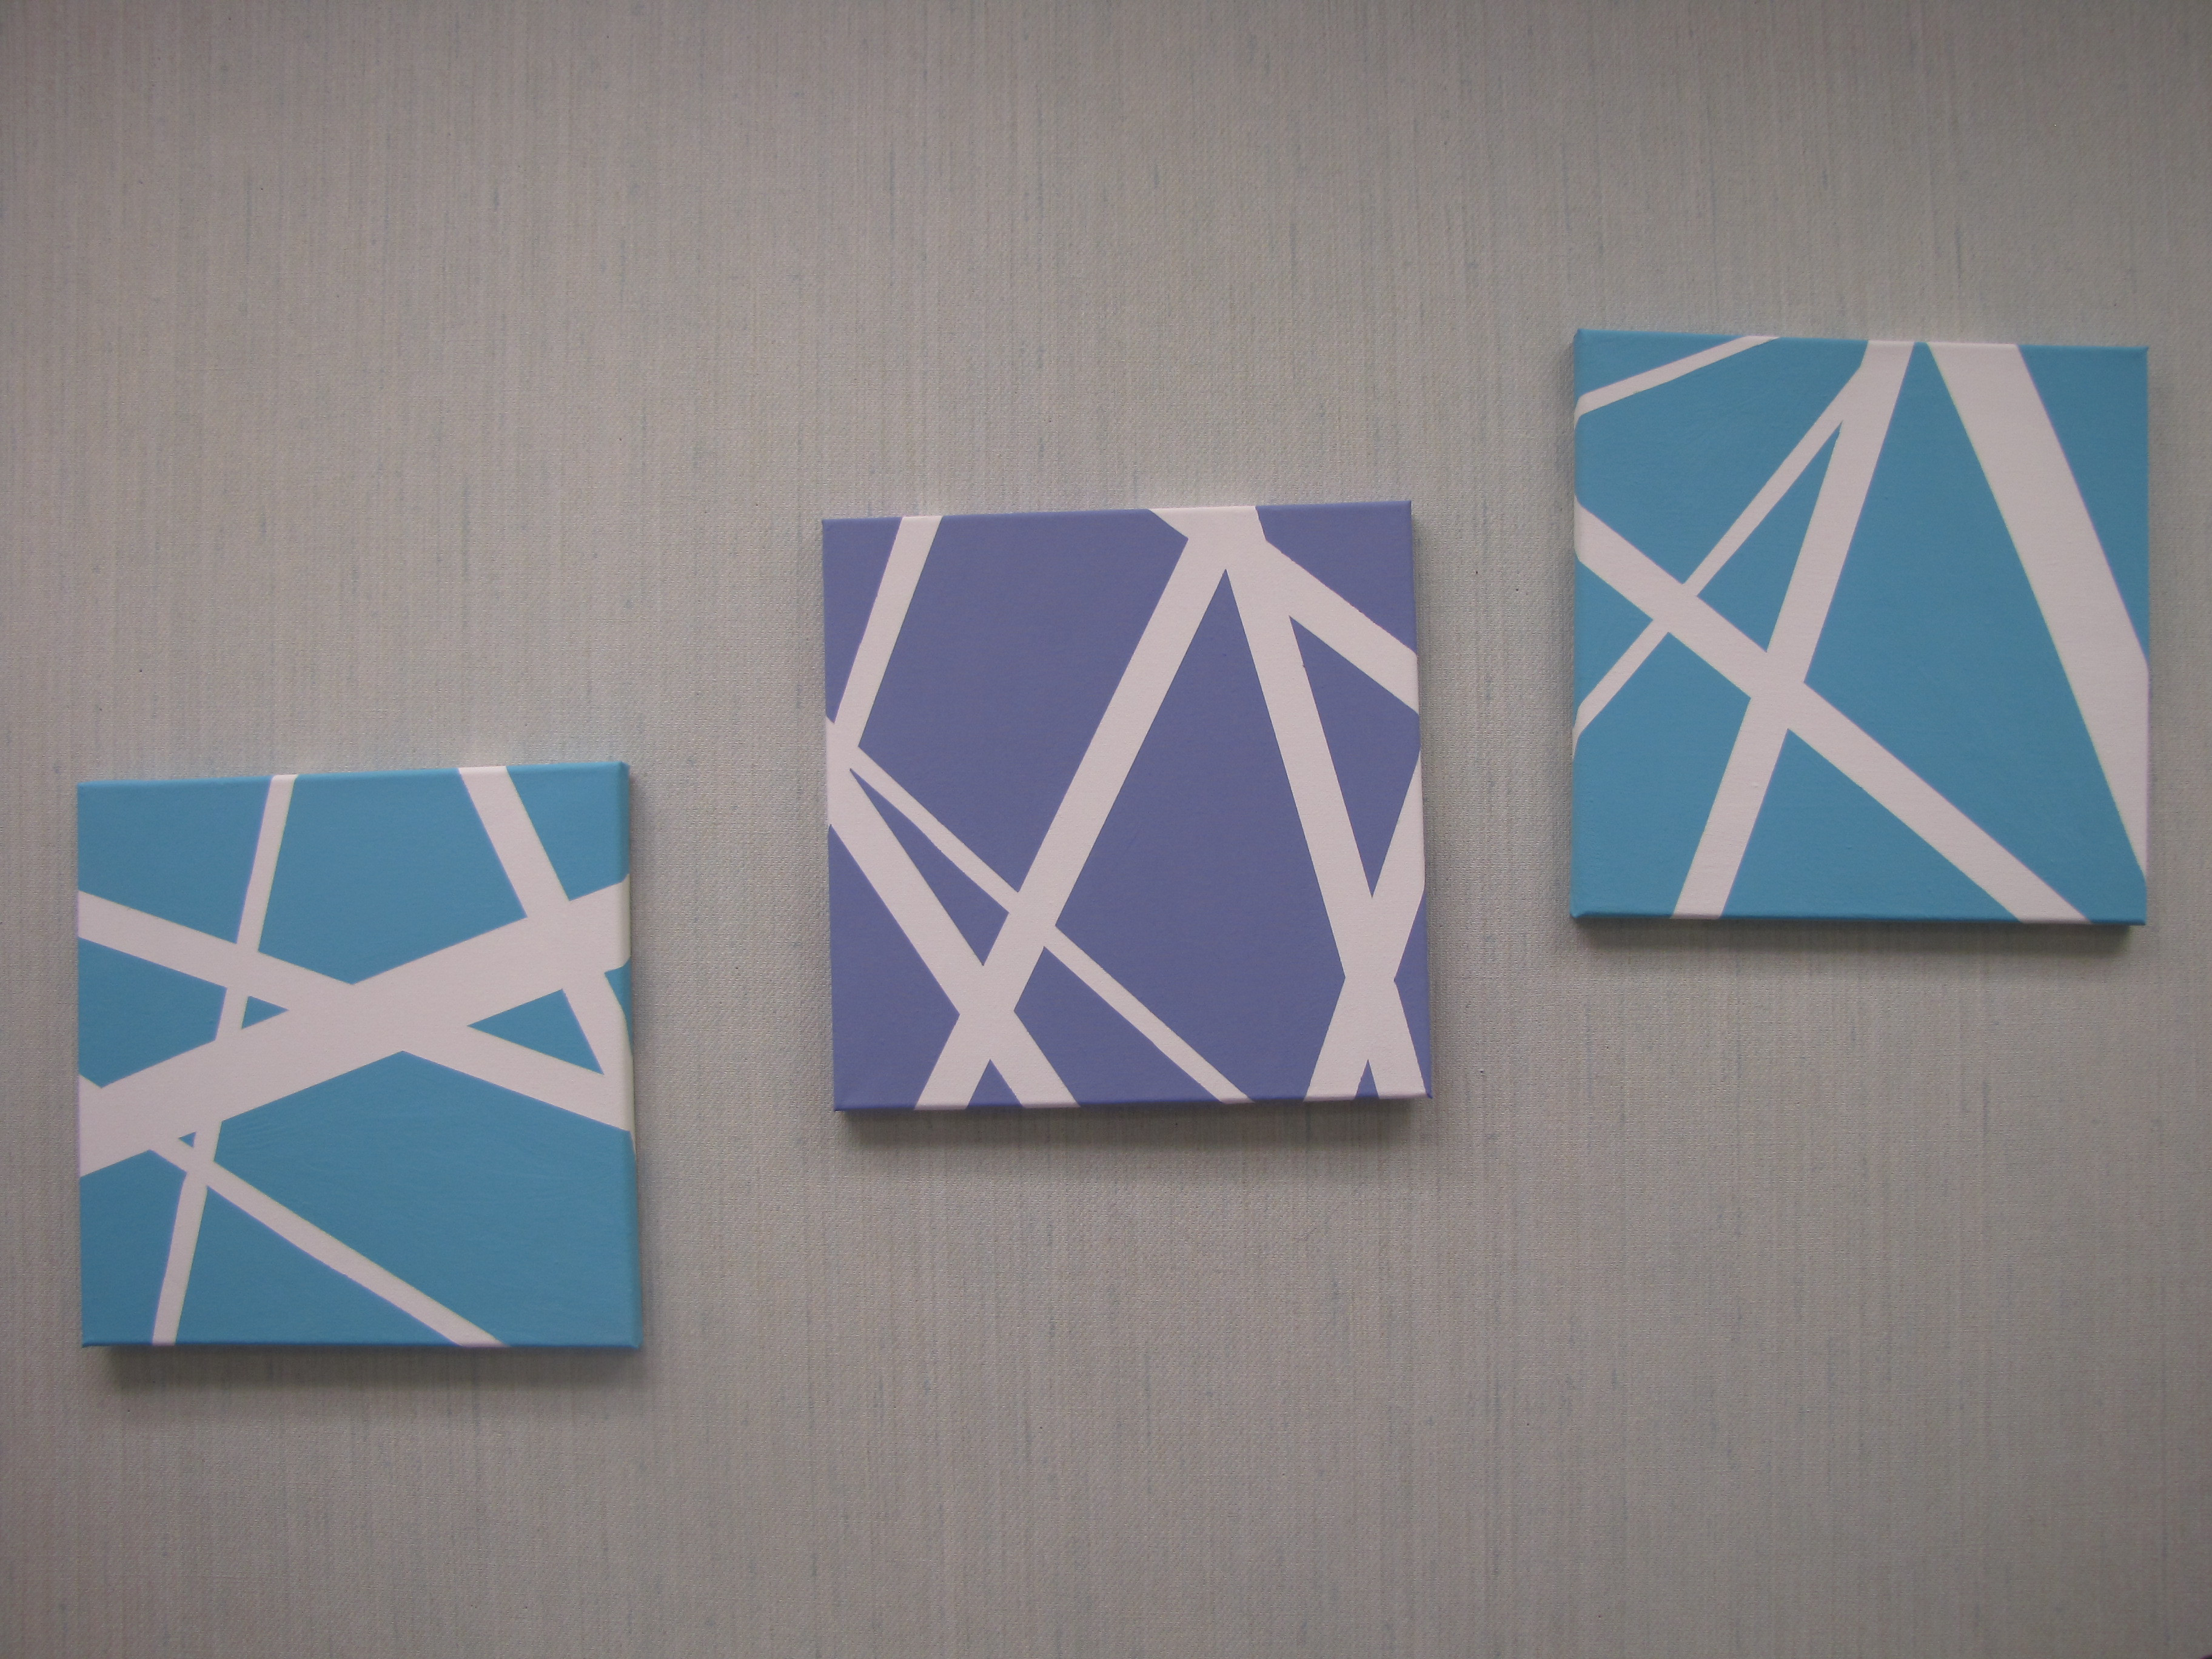 Best ideas about DIY Canvas Paintings . Save or Pin DIY Canvas Wall Art Now.